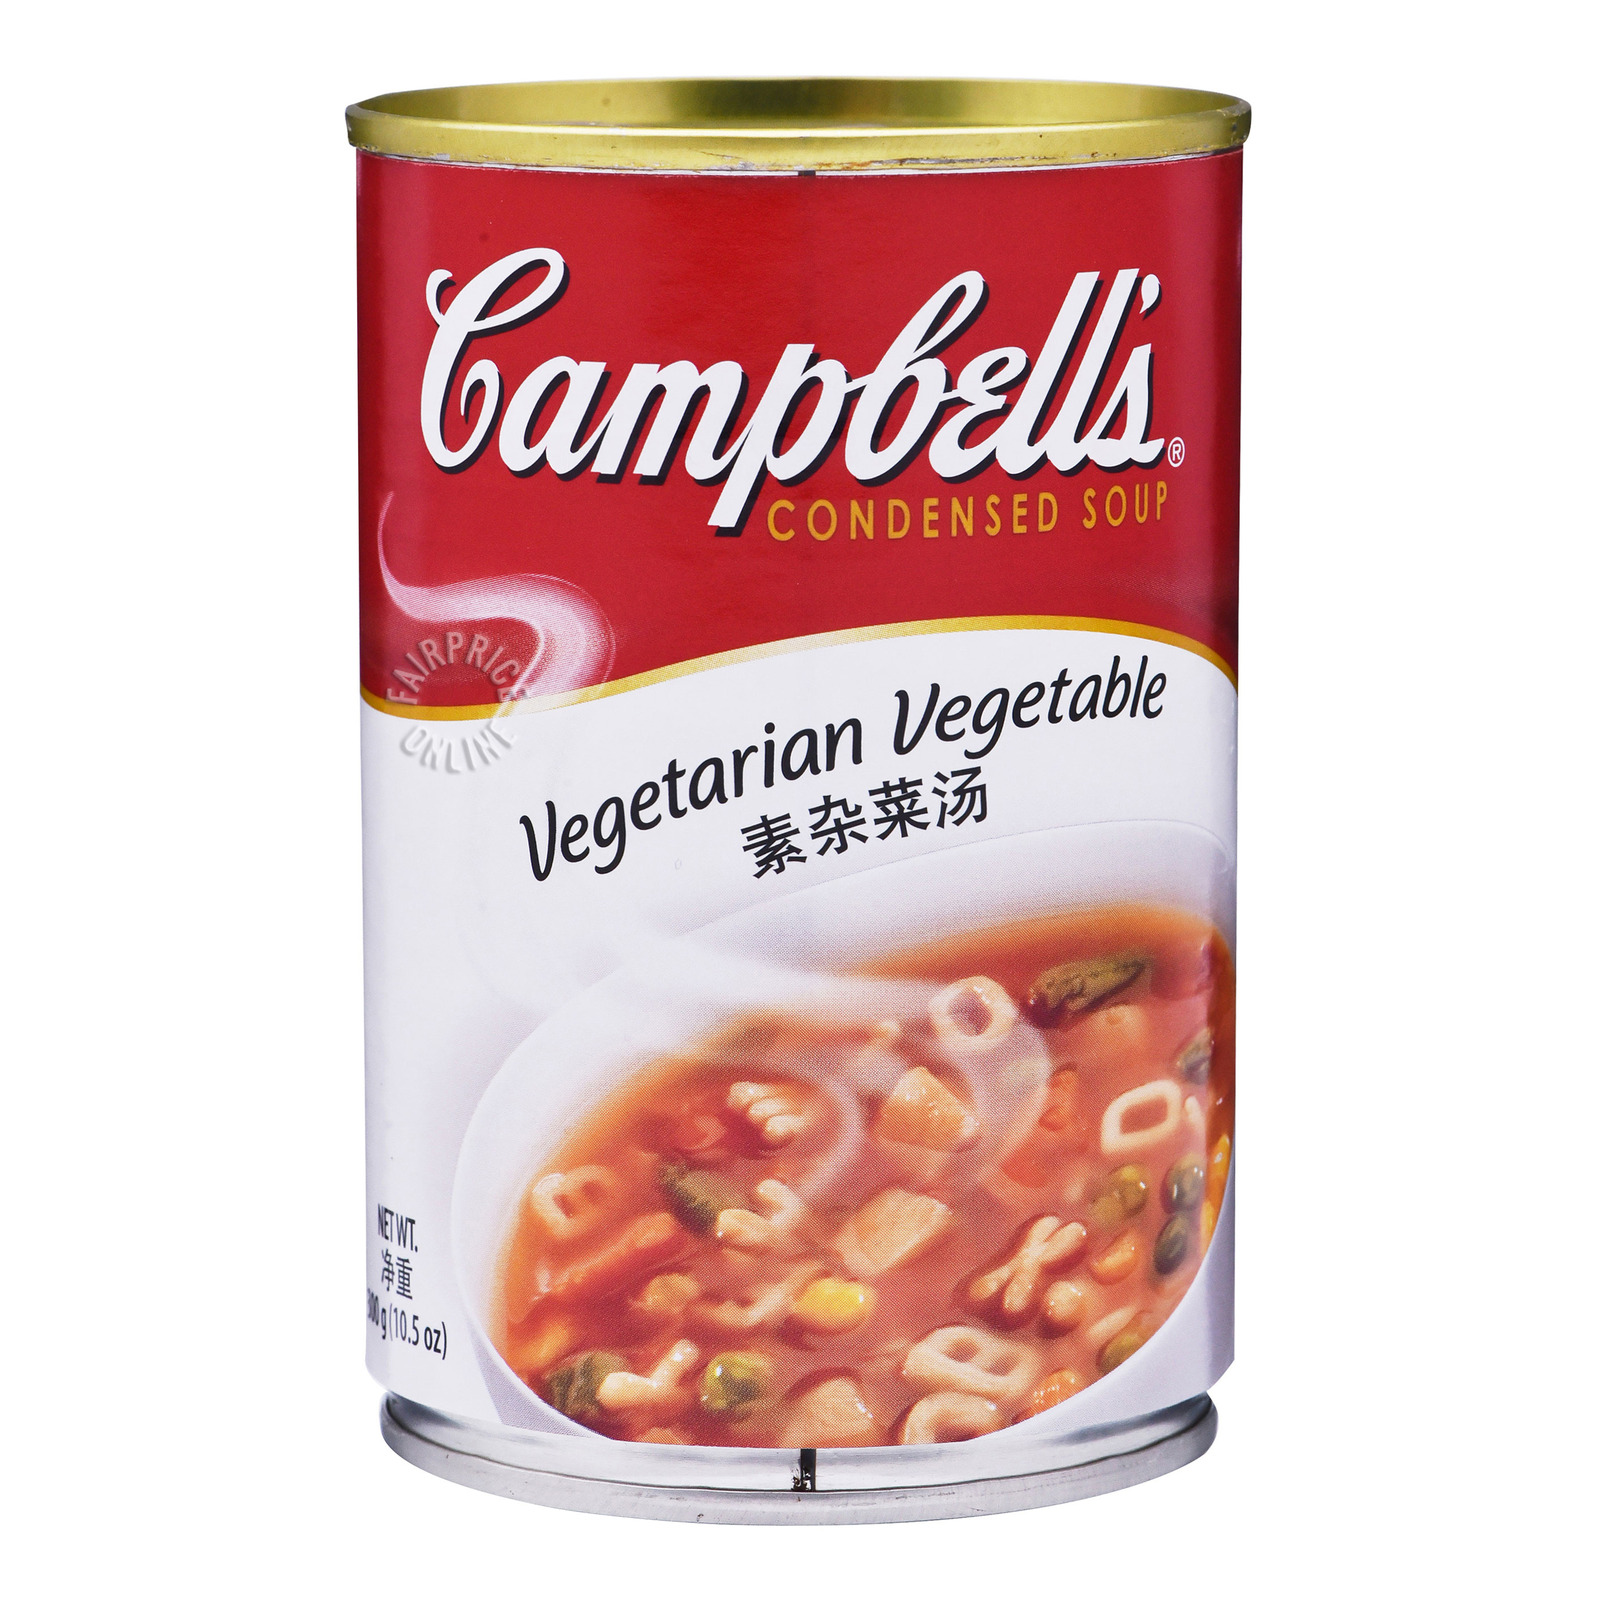 Campbell's Condensed Soup - Vegetable